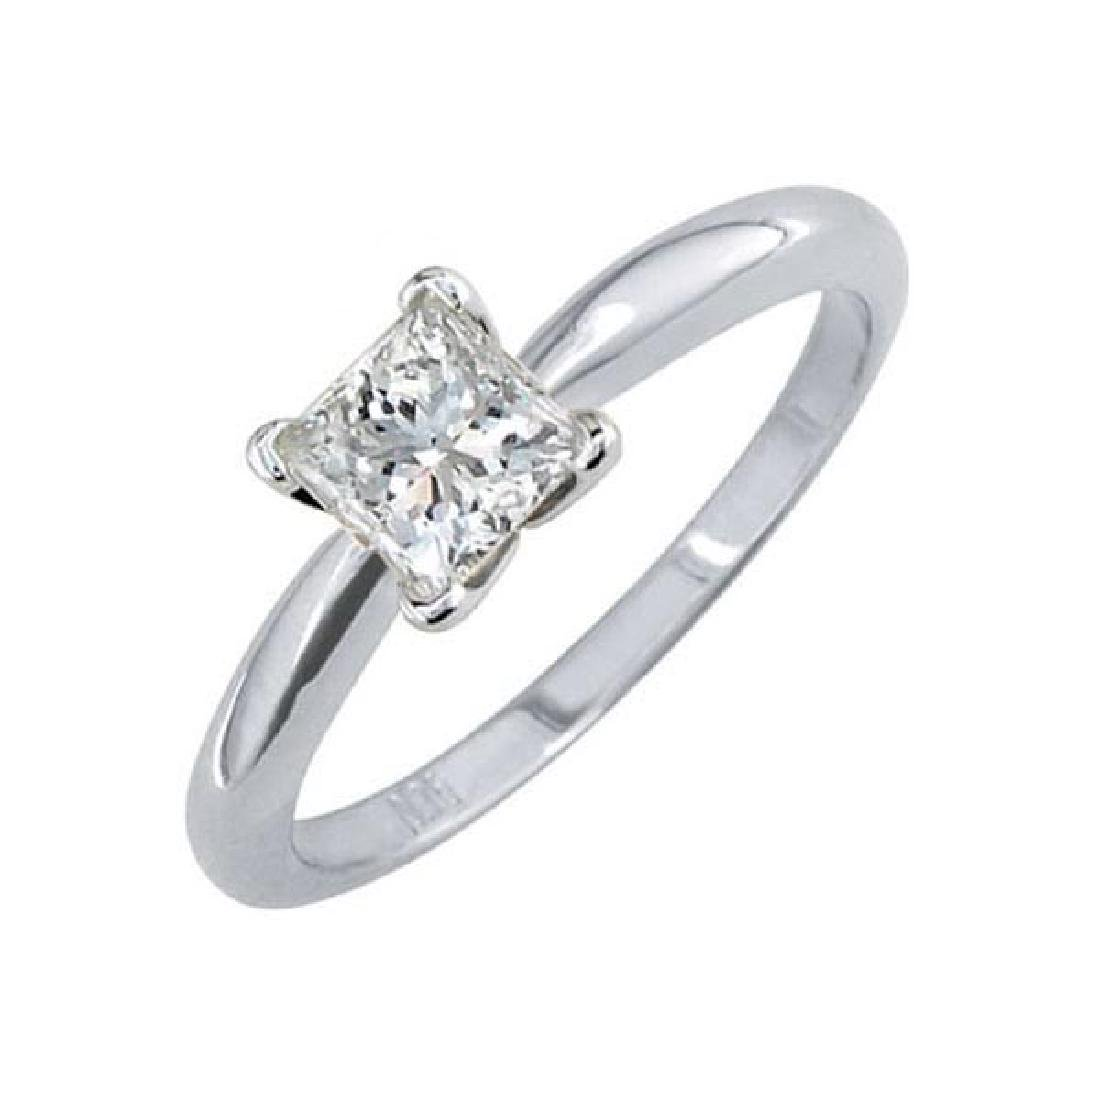 Certified 0.9 CTW Princess Diamond Solitaire 14k Ring G